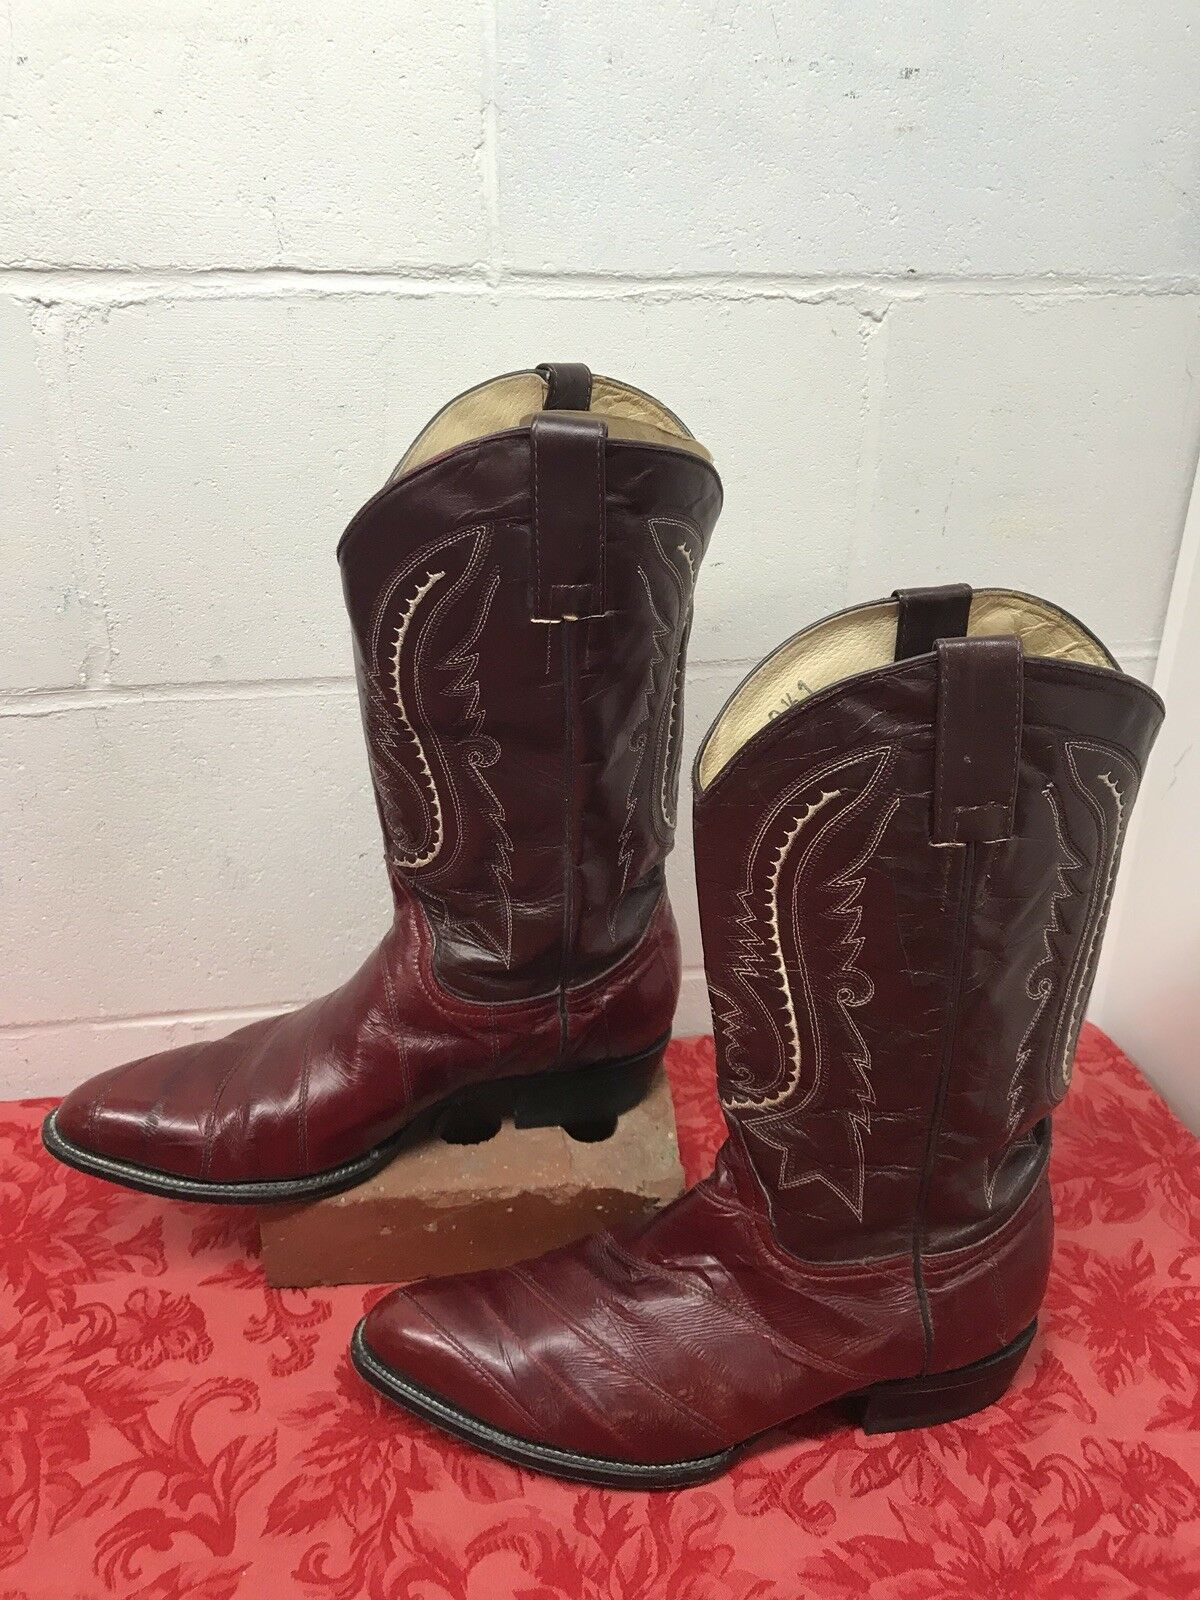 Men's  Burgundy Red Leather Cowboy Boots Western Boots Stitched Decor 9.5 Mexico